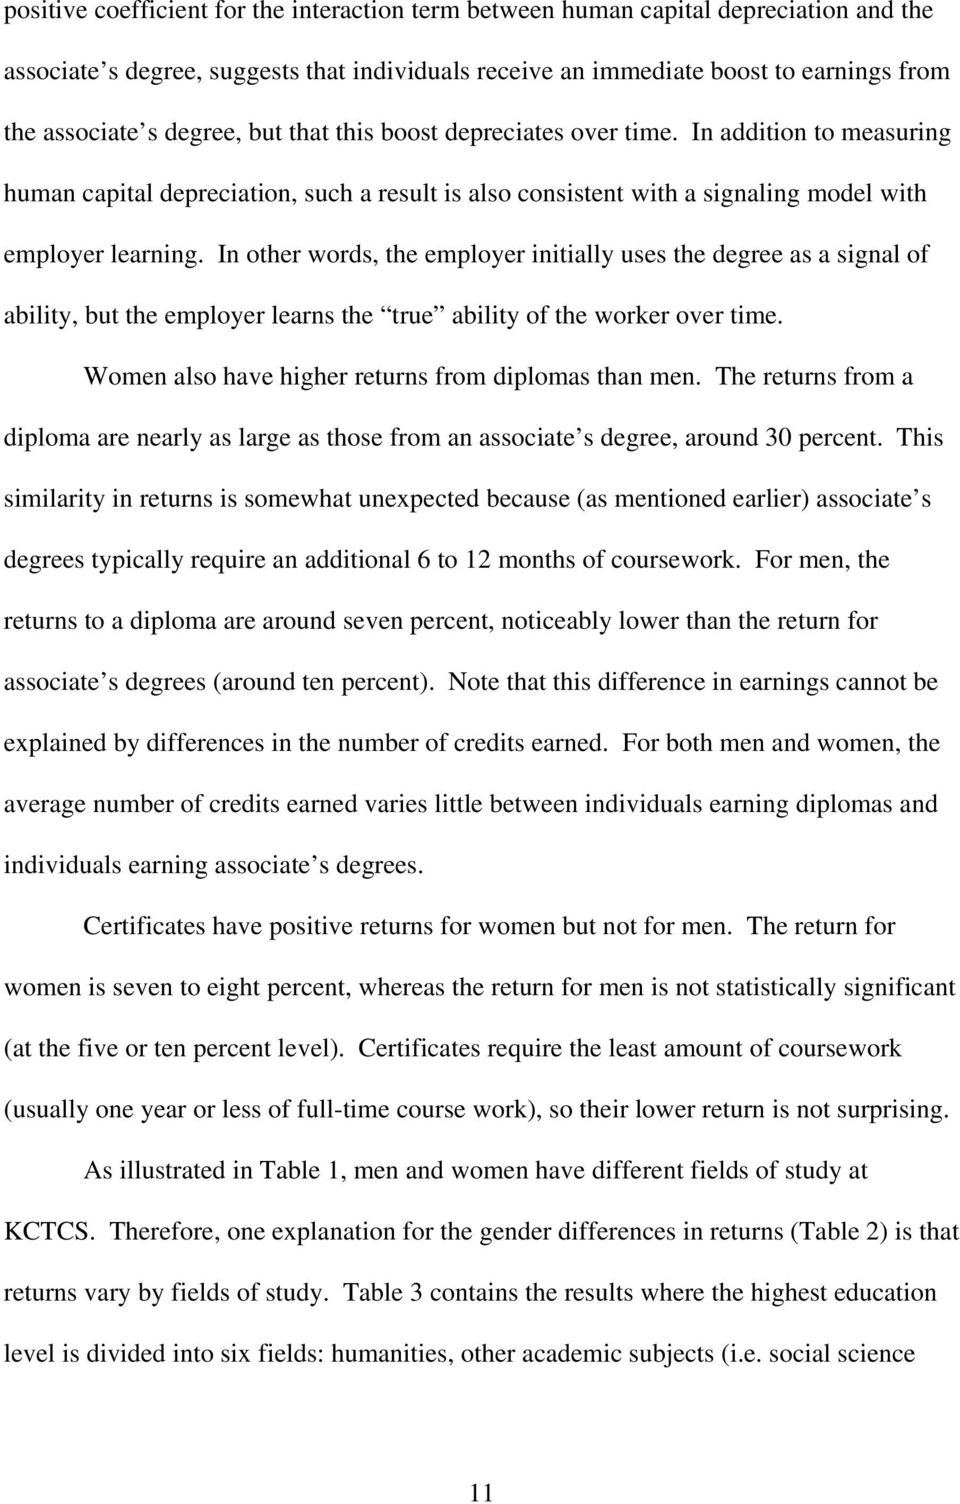 In other words, the employer initially uses the degree as a signal of ability, but the employer learns the true ability of the worker over time. Women also have higher returns from diplomas than men.